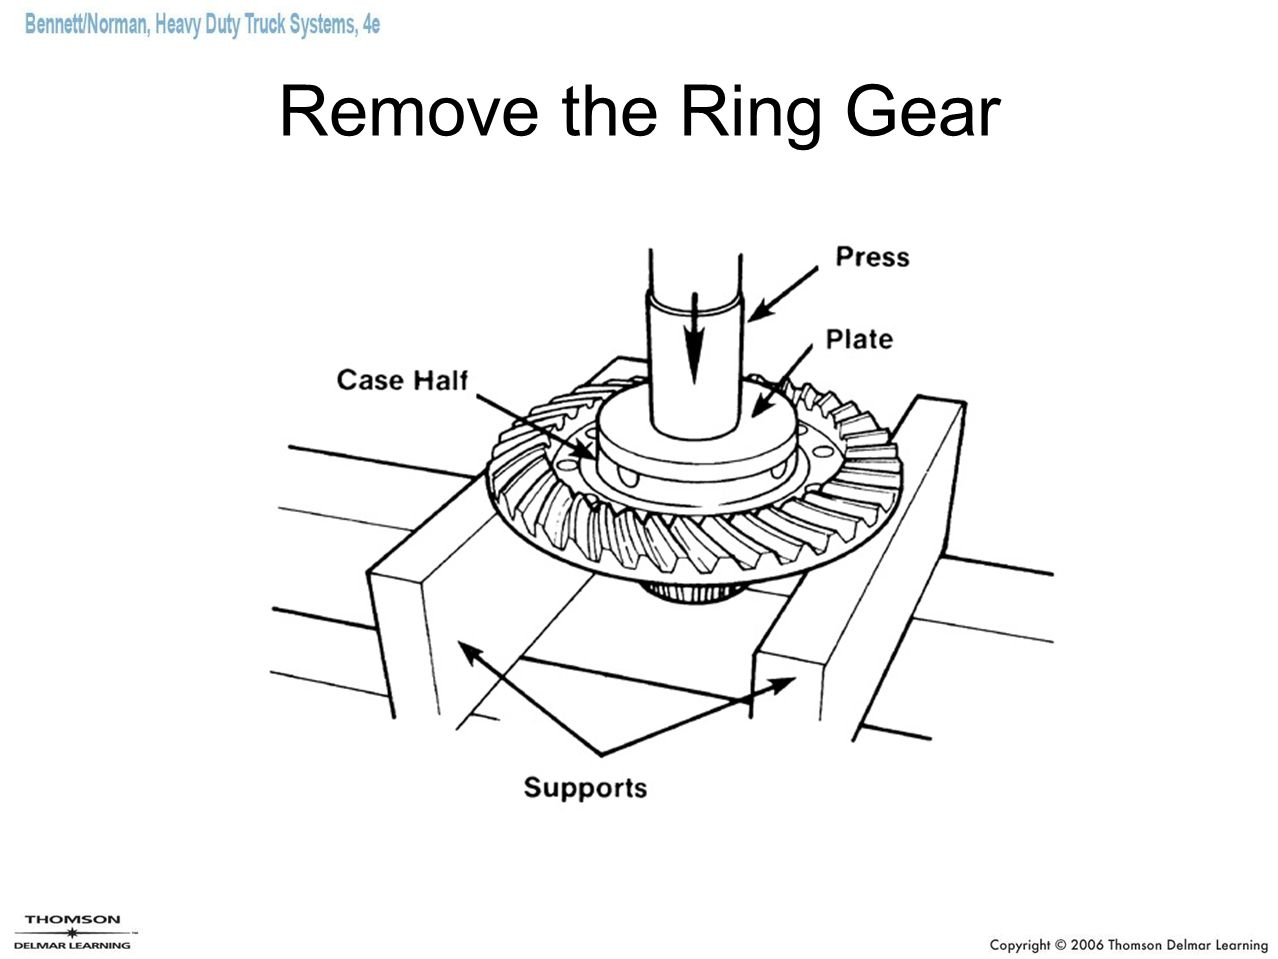 Remove the Ring Gear